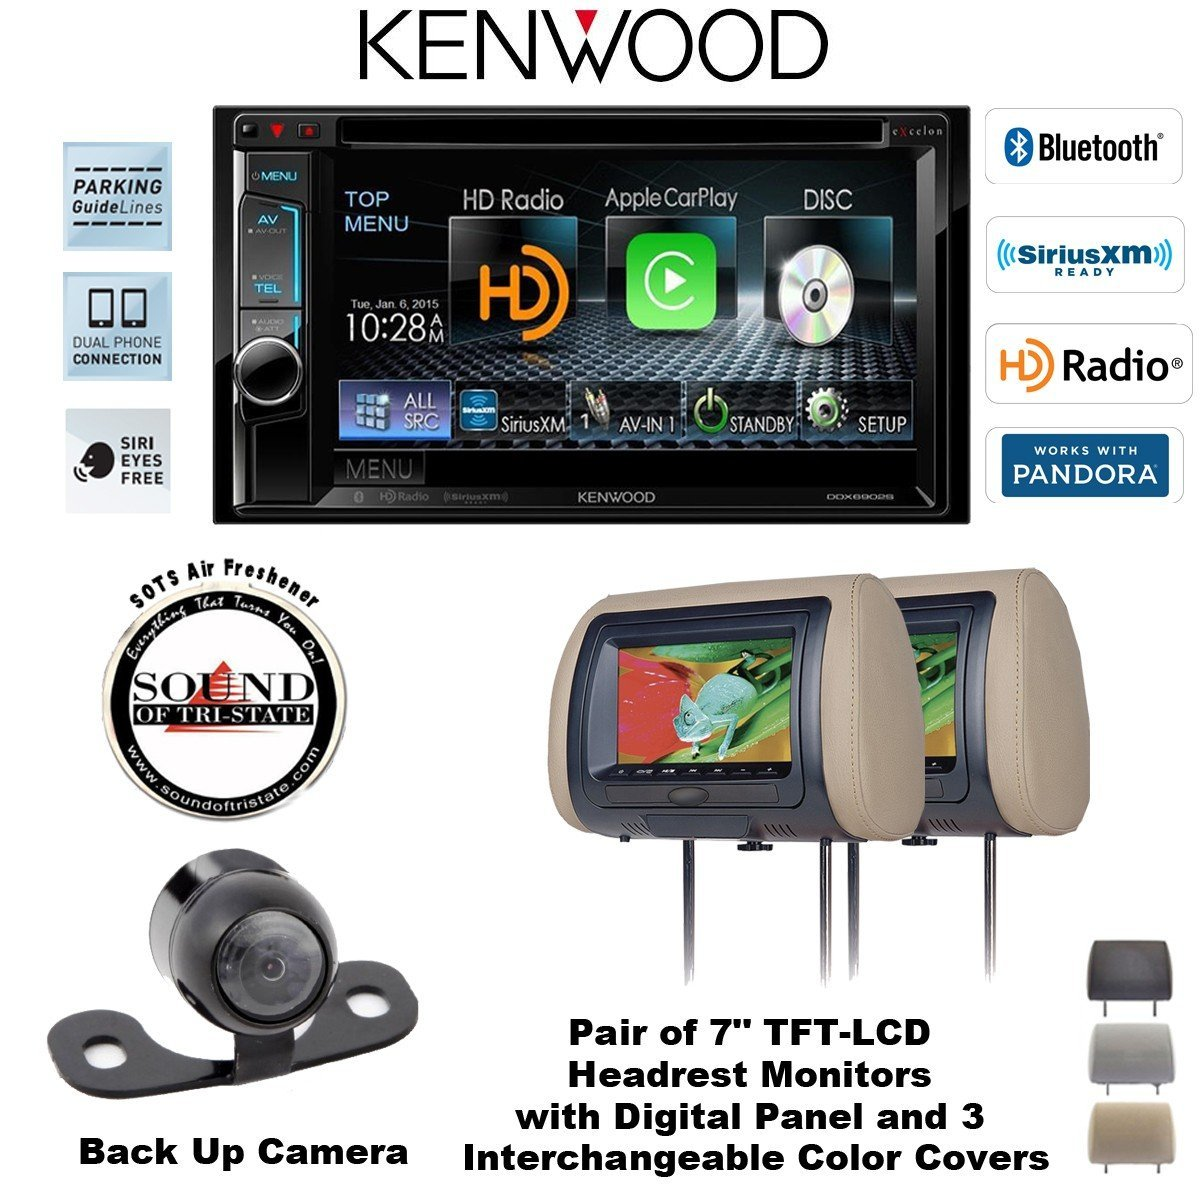 Cheap Kenwood Dvd Double Din Find Deals On Dnx690hd Wiring Diagram Get Quotations Ddx6902s 62 In Dash Receiver With Two Cls700x Concept Headrest Monitors